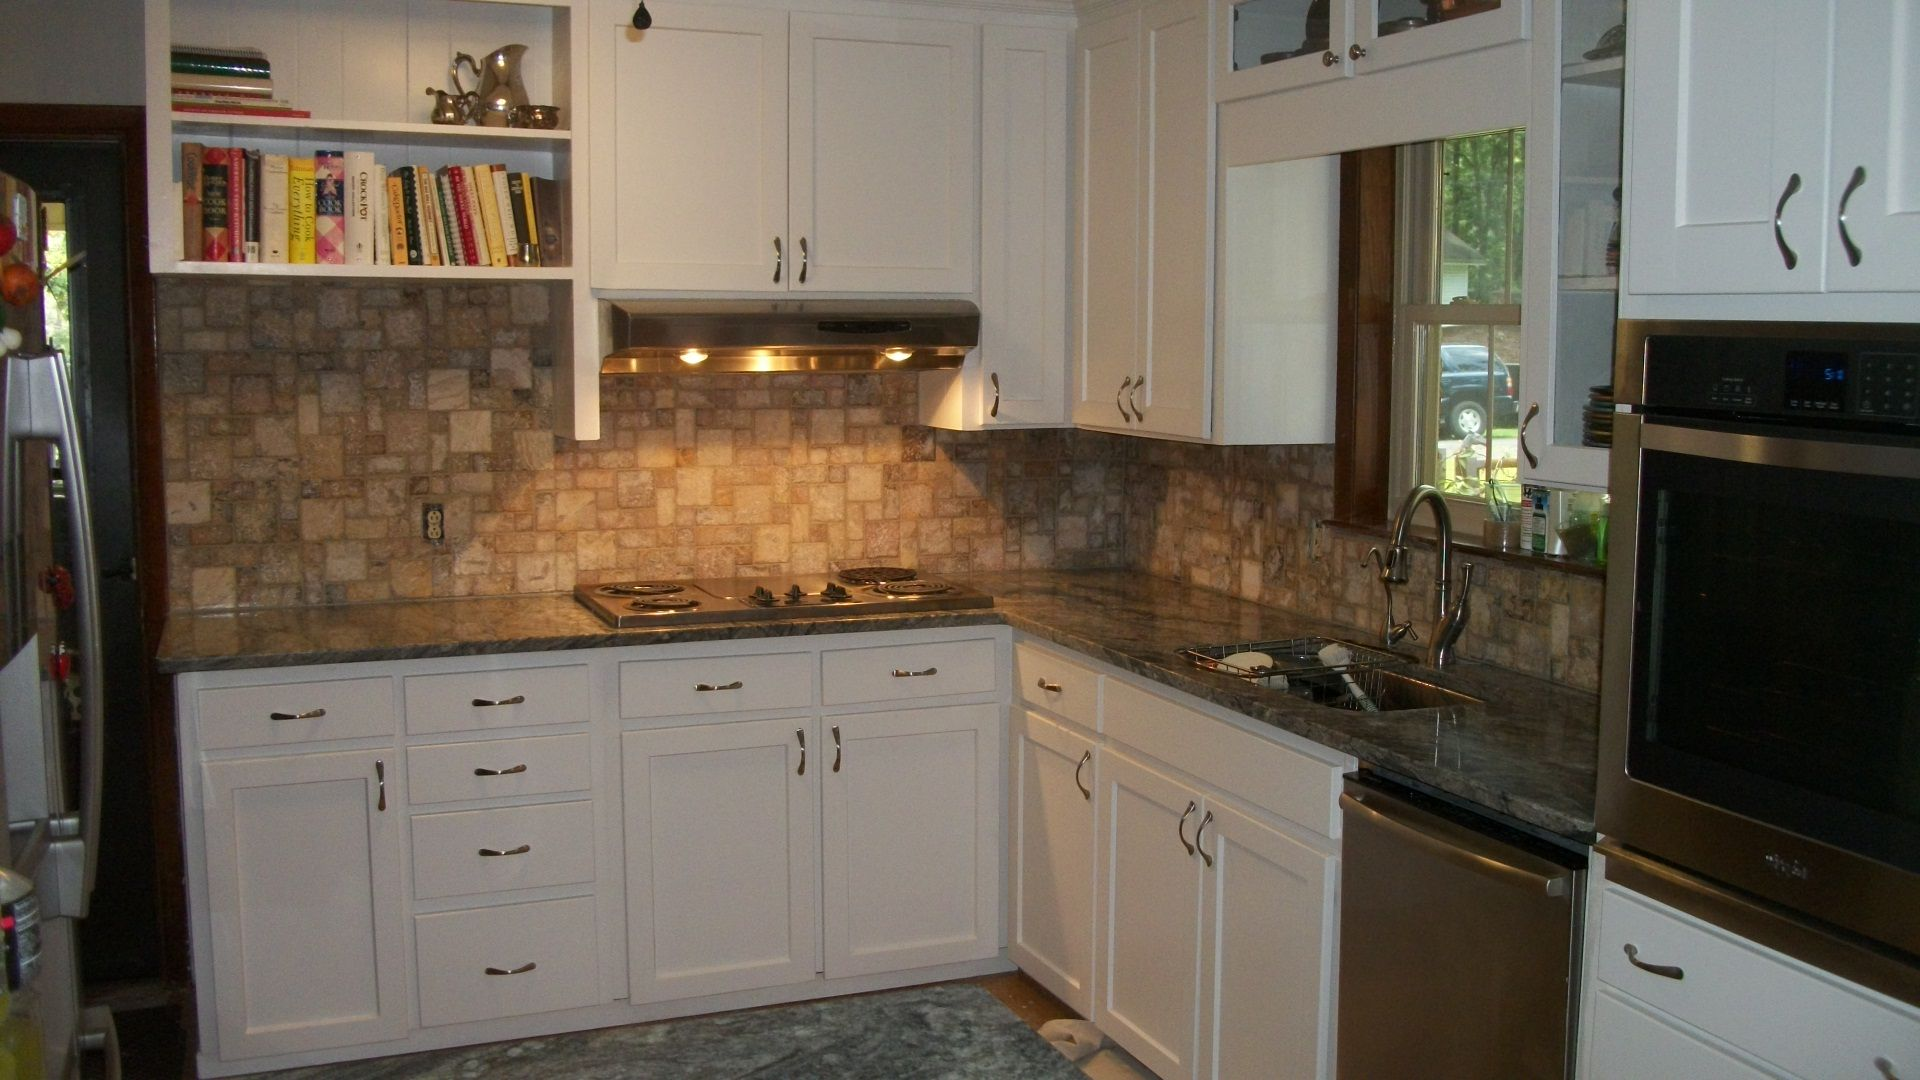 We made modified Shaker style cabinet doors & drawer fronts for this